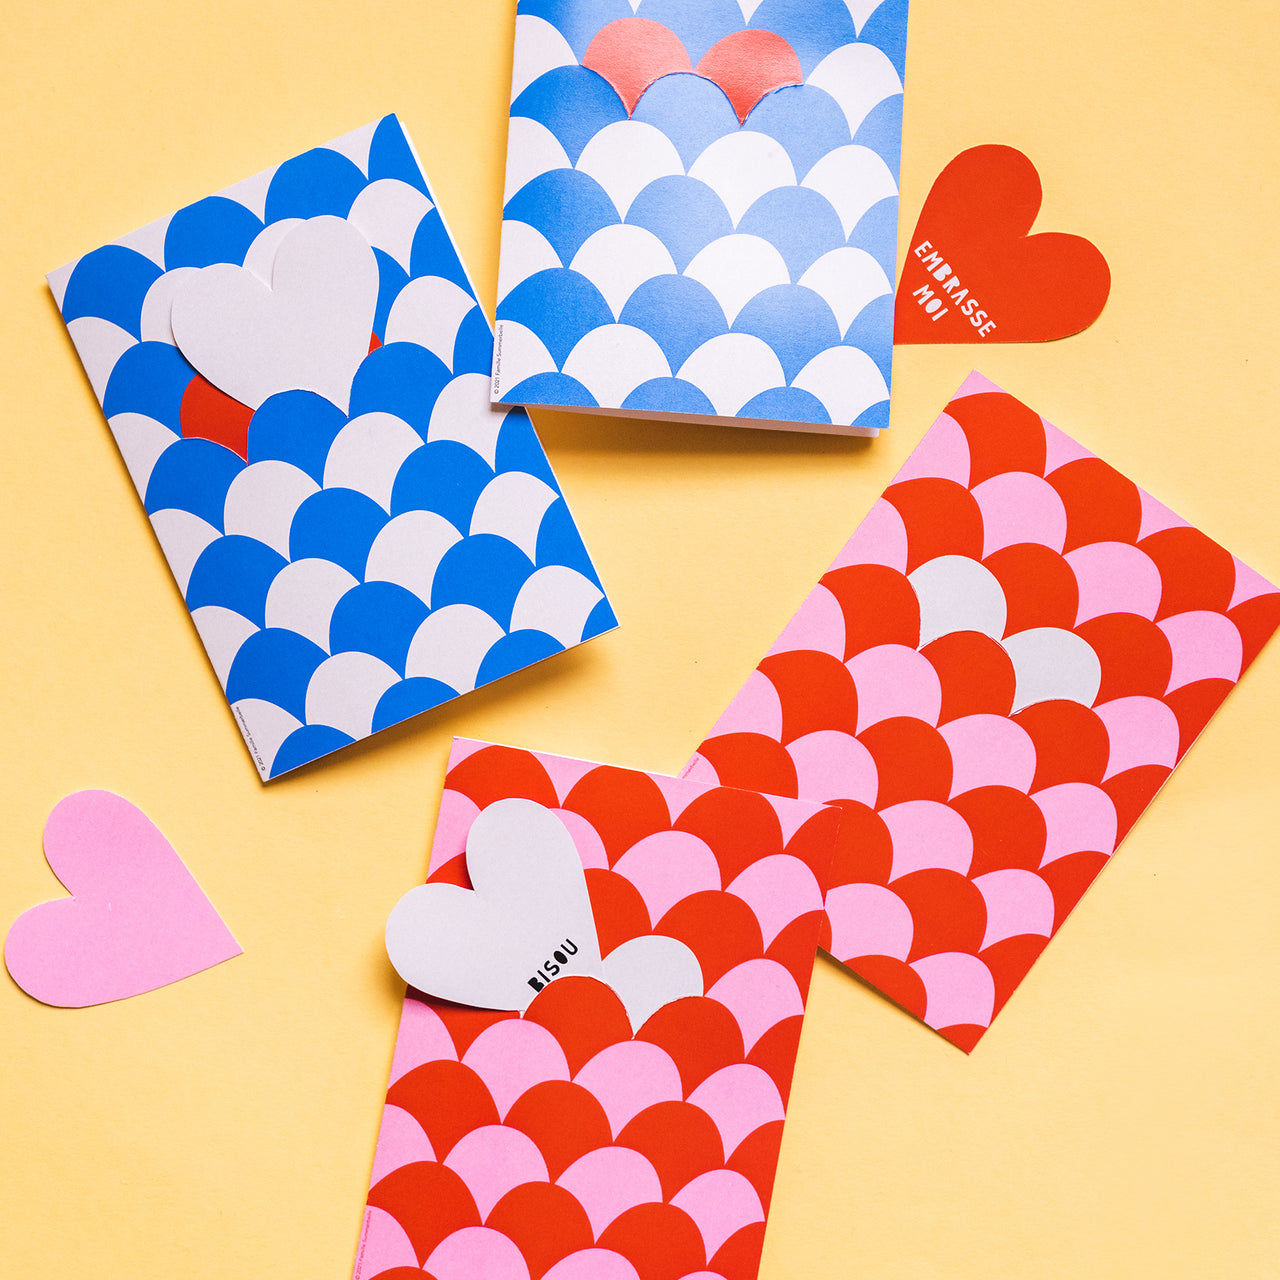 Heart Tile Valentine Cards by Julie Marabelle of Famille Summerbelle, PDF Printable